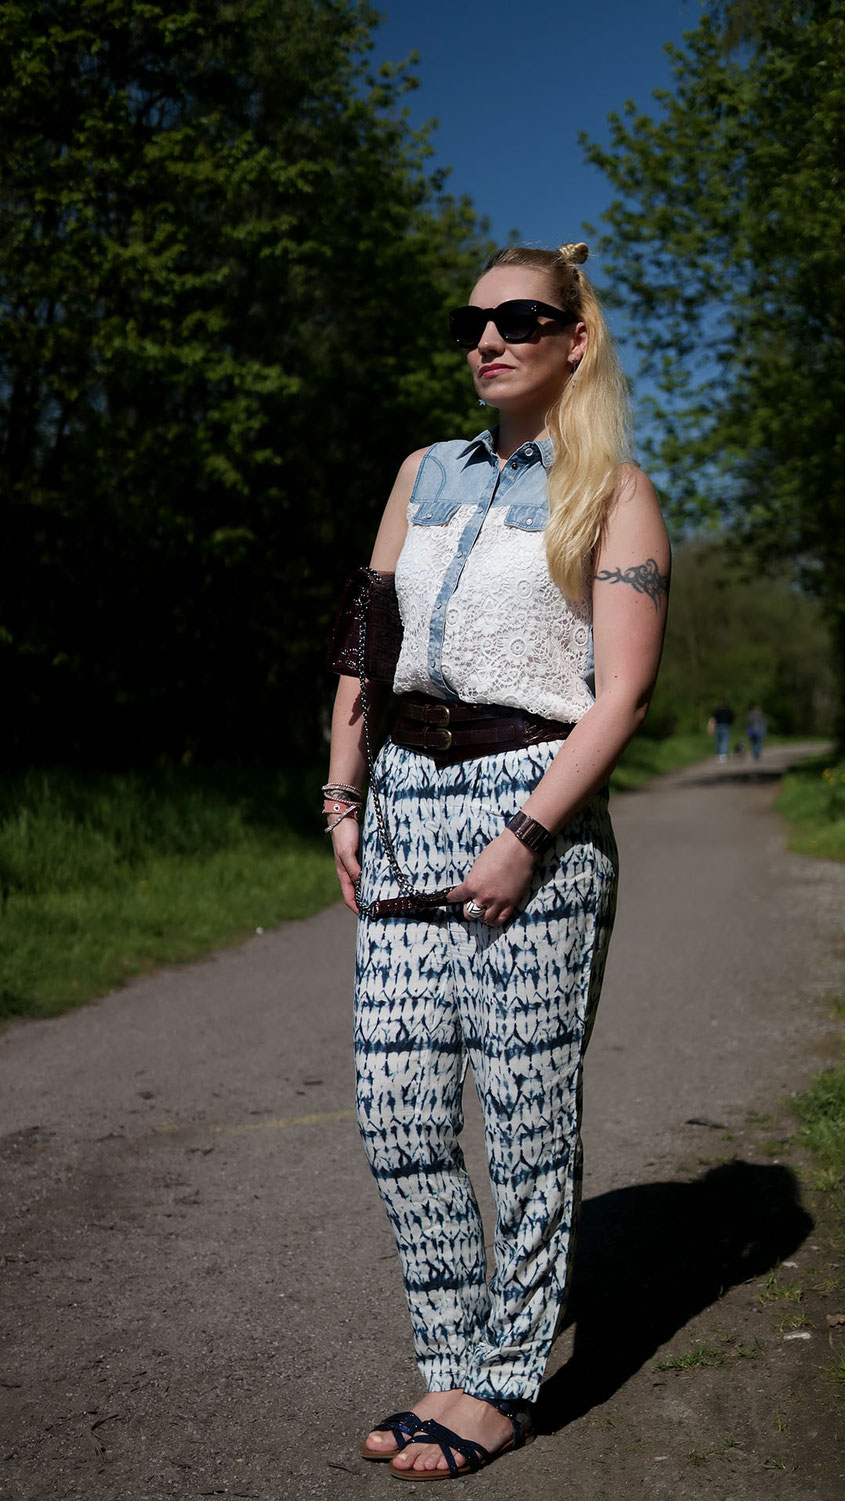 Outfit | Jeansbluse mit Spitze zur weiten Sommerhose | Lace denim top and wide leg trousers | hot-port.de | 30+ Fashion & Lifestyle Blog